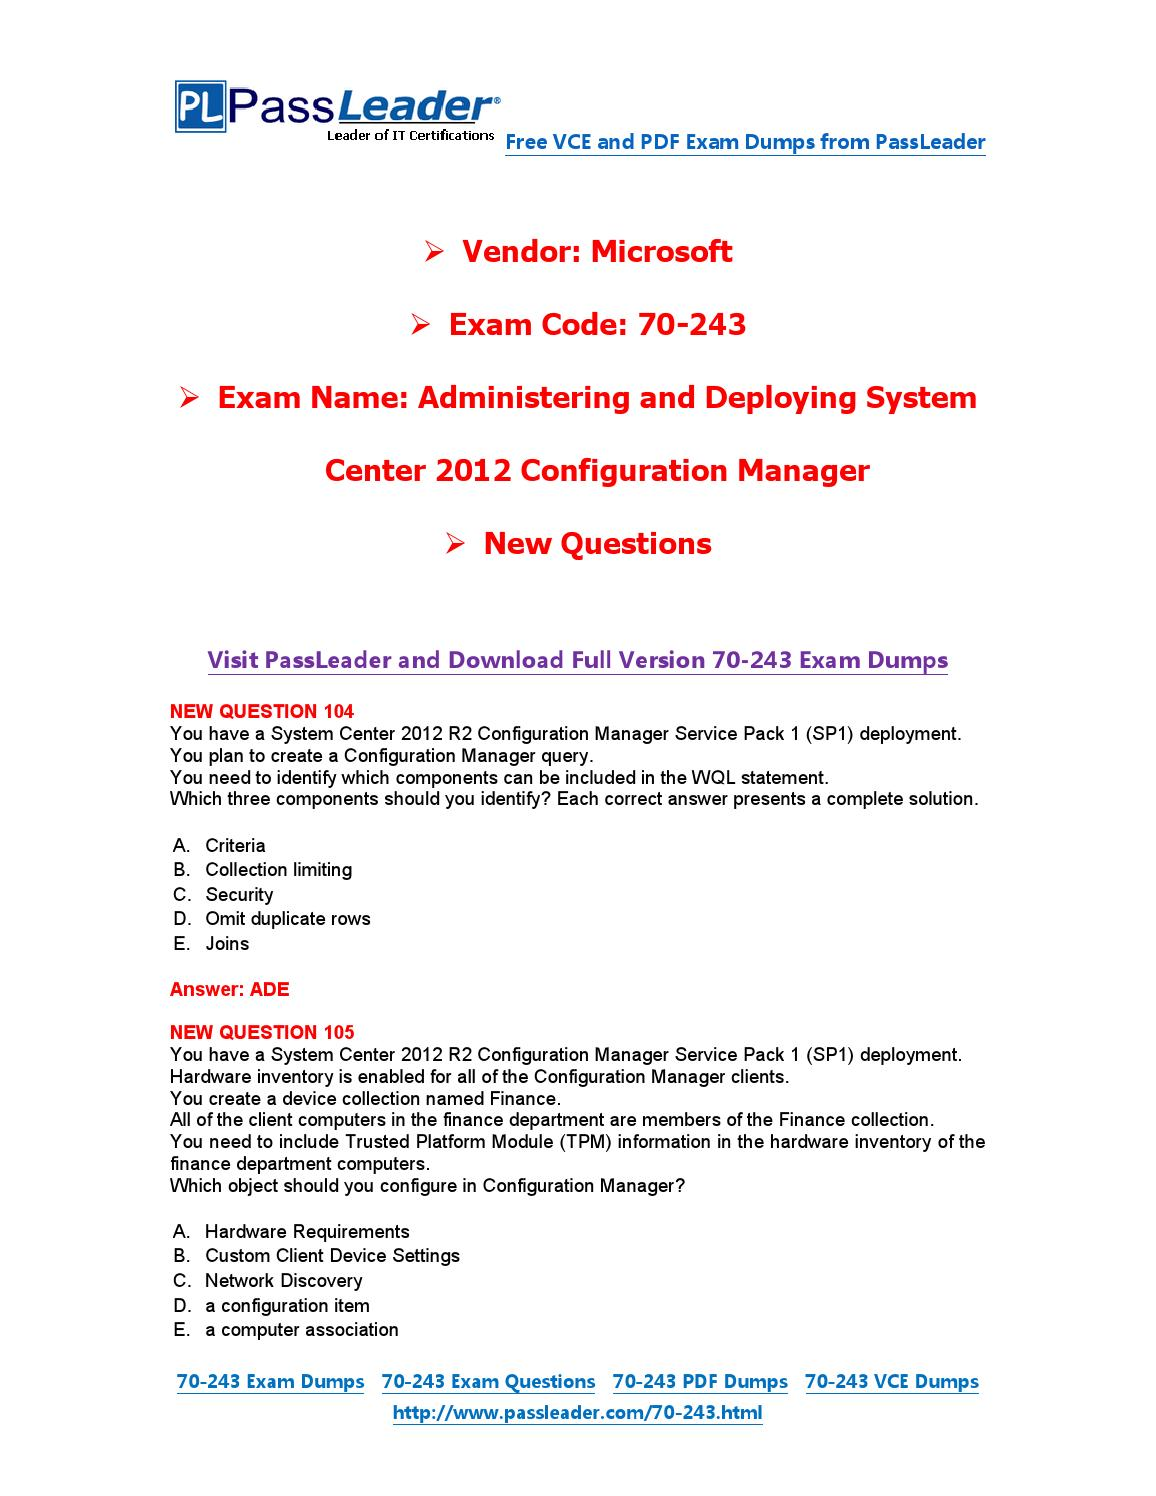 Feb 2016 new 70 243 exam dumps for free vce and pdf by exam feb 2016 new 70 243 exam dumps for free vce and pdf by exam dumps issuu xflitez Choice Image